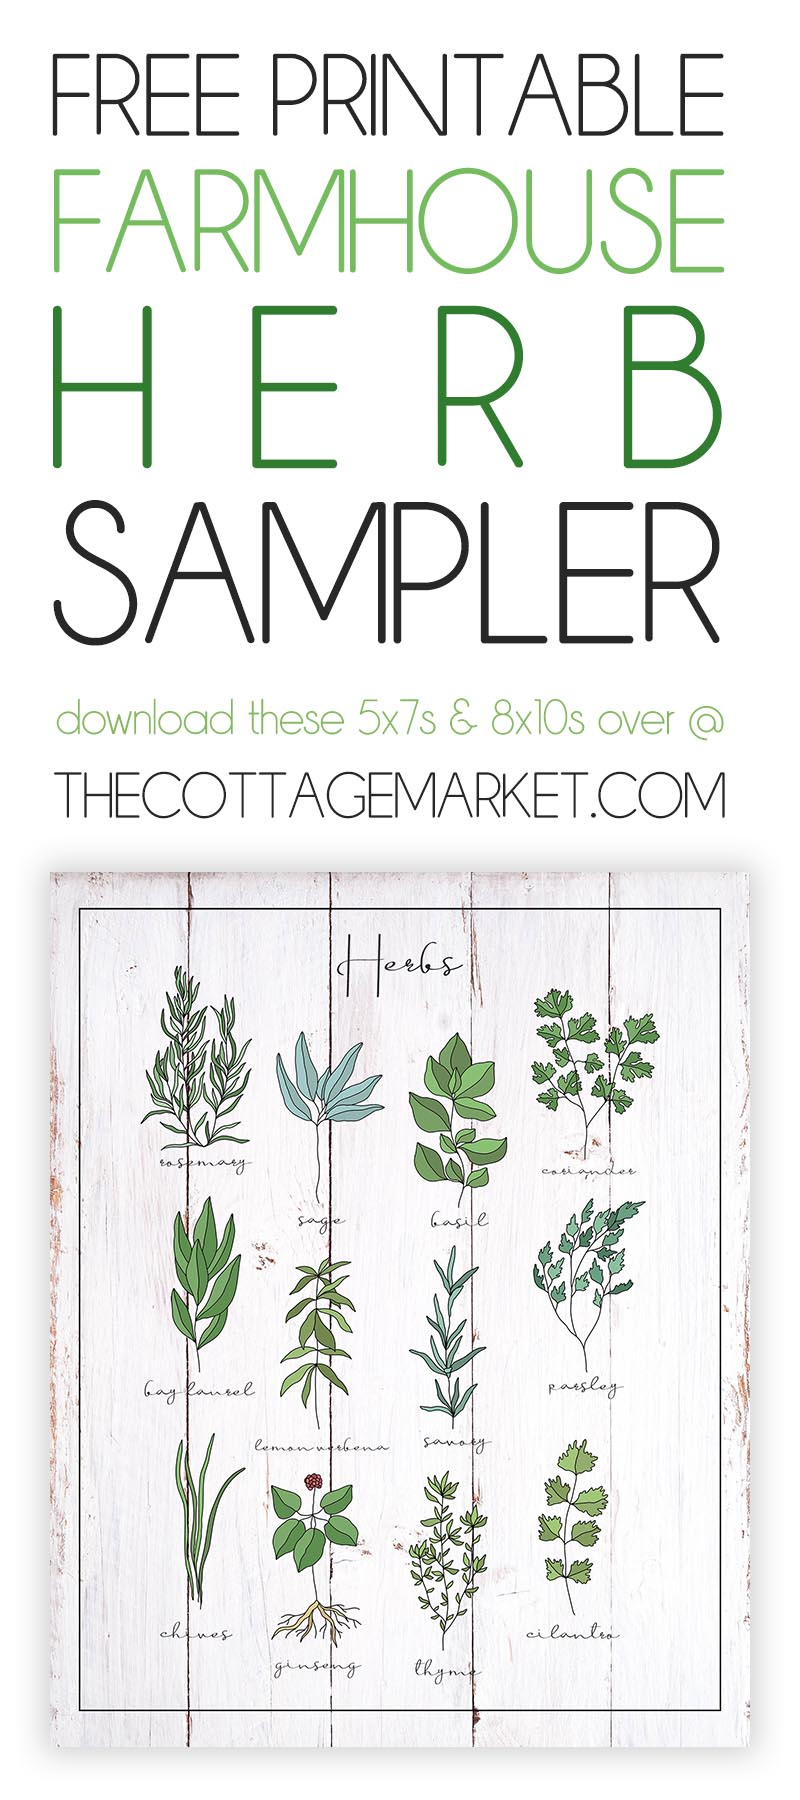 This Fabulous Free Printable Farmhouse Herb Sampler is going to add so much charm to your Kitchen and Dining Room! Comes in a variety of backgrounds and one will be perfect for your special Home Decor!